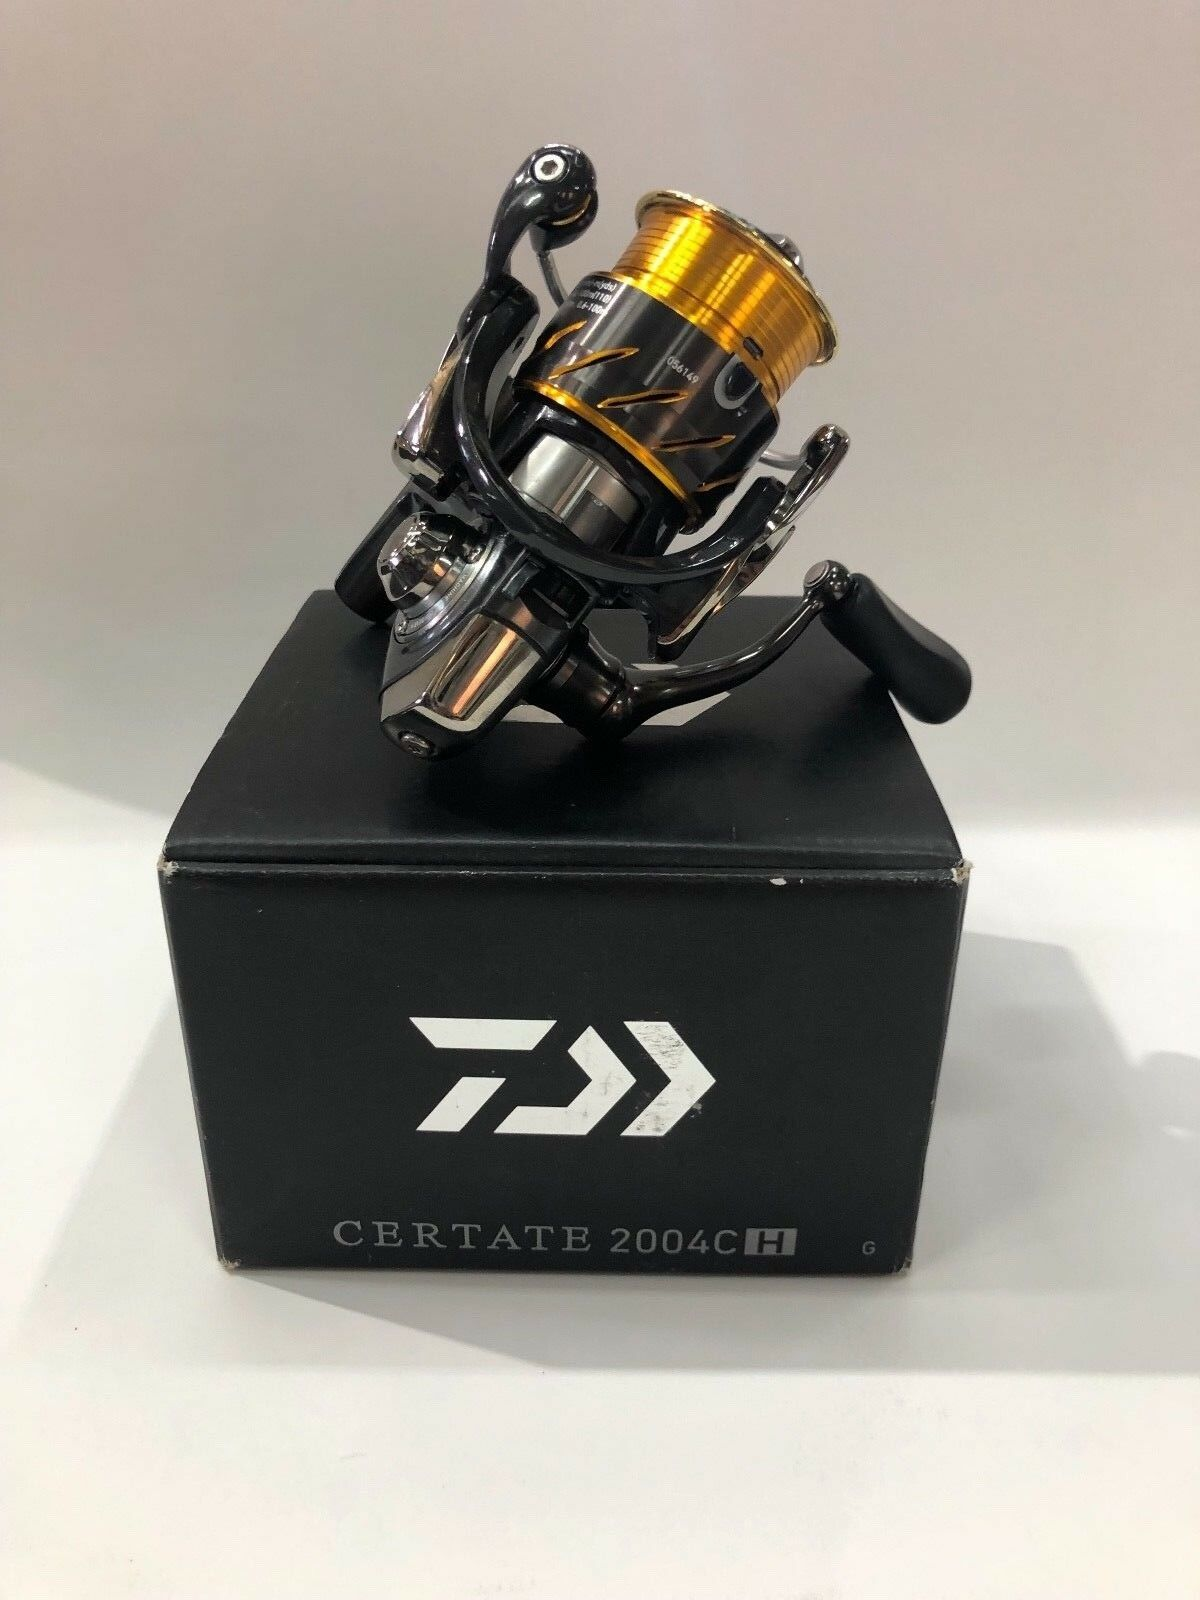 Daiwa certate 2004cH spinning fishing reel,Daiwa japan,Brand New